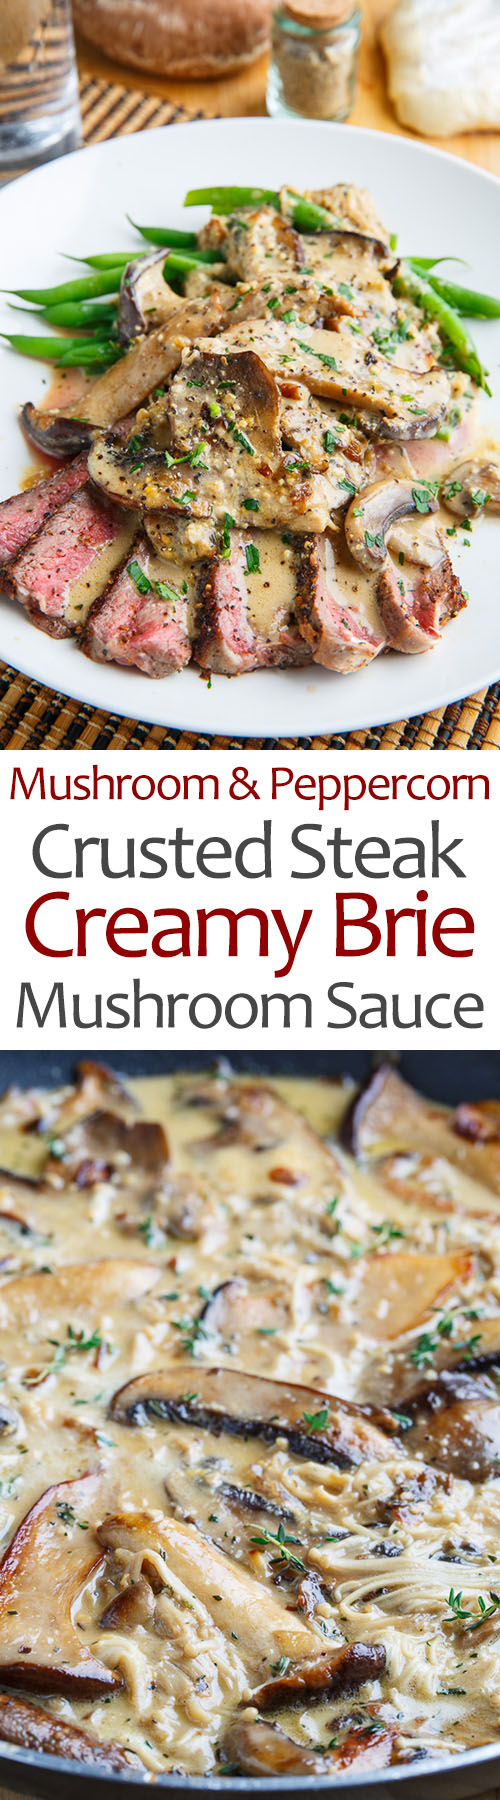 Mushroom and Peppercorn Crusted Steak in a Creamy Brie Mushroom Sauce